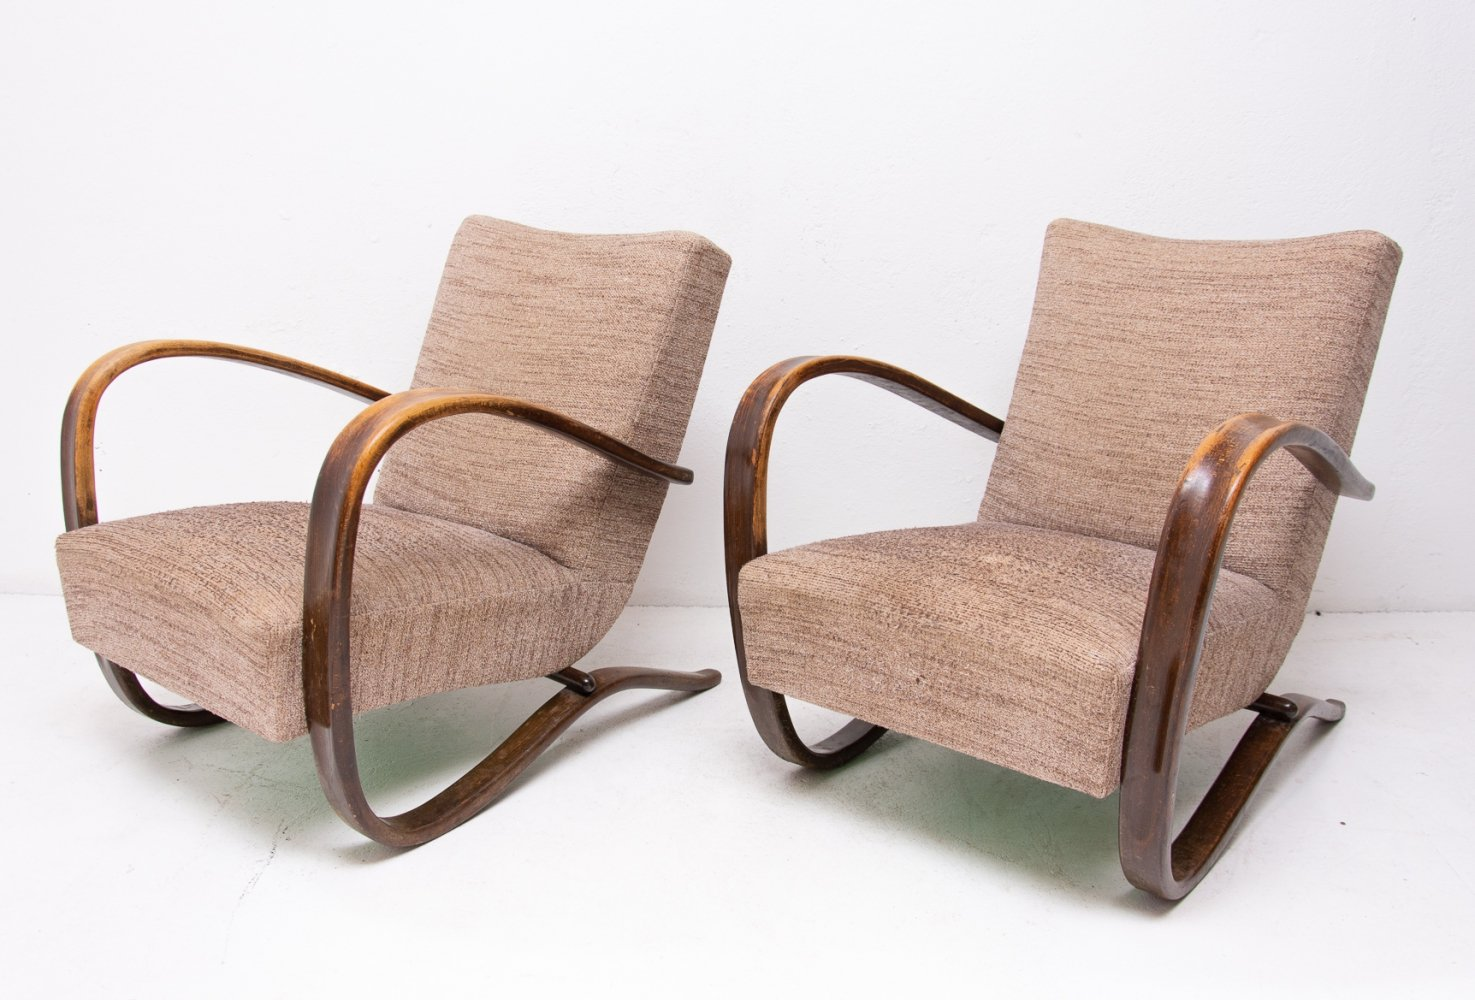 Pair of Lounge bentwood